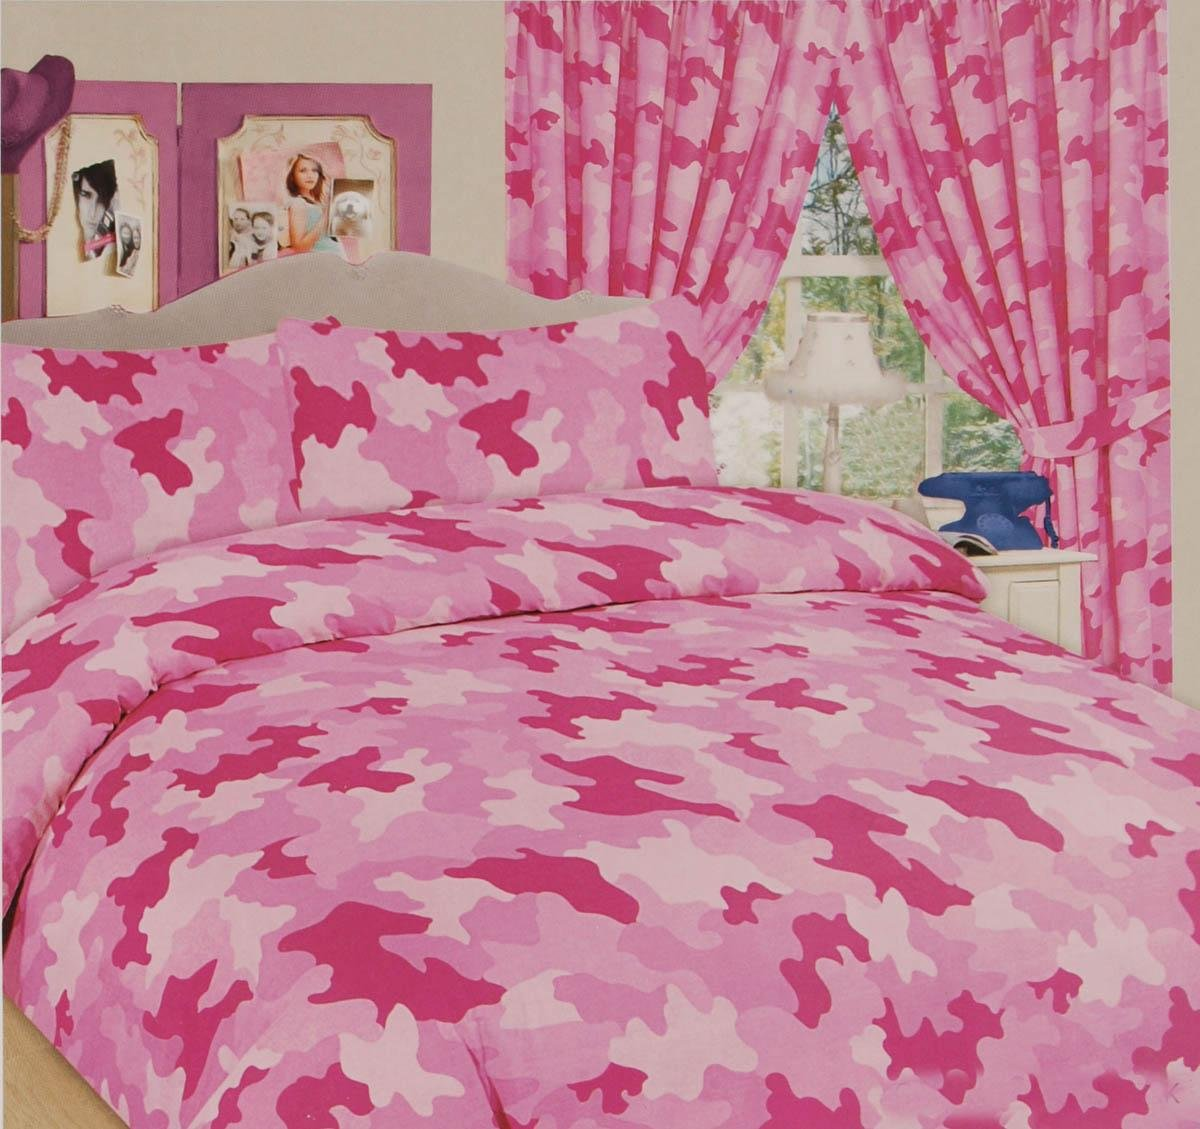 ARMY CAMOUFLAGE MILITARY SINGLE BED DUVET QUILT COVER BEDDING SET PINK - NEW RZK